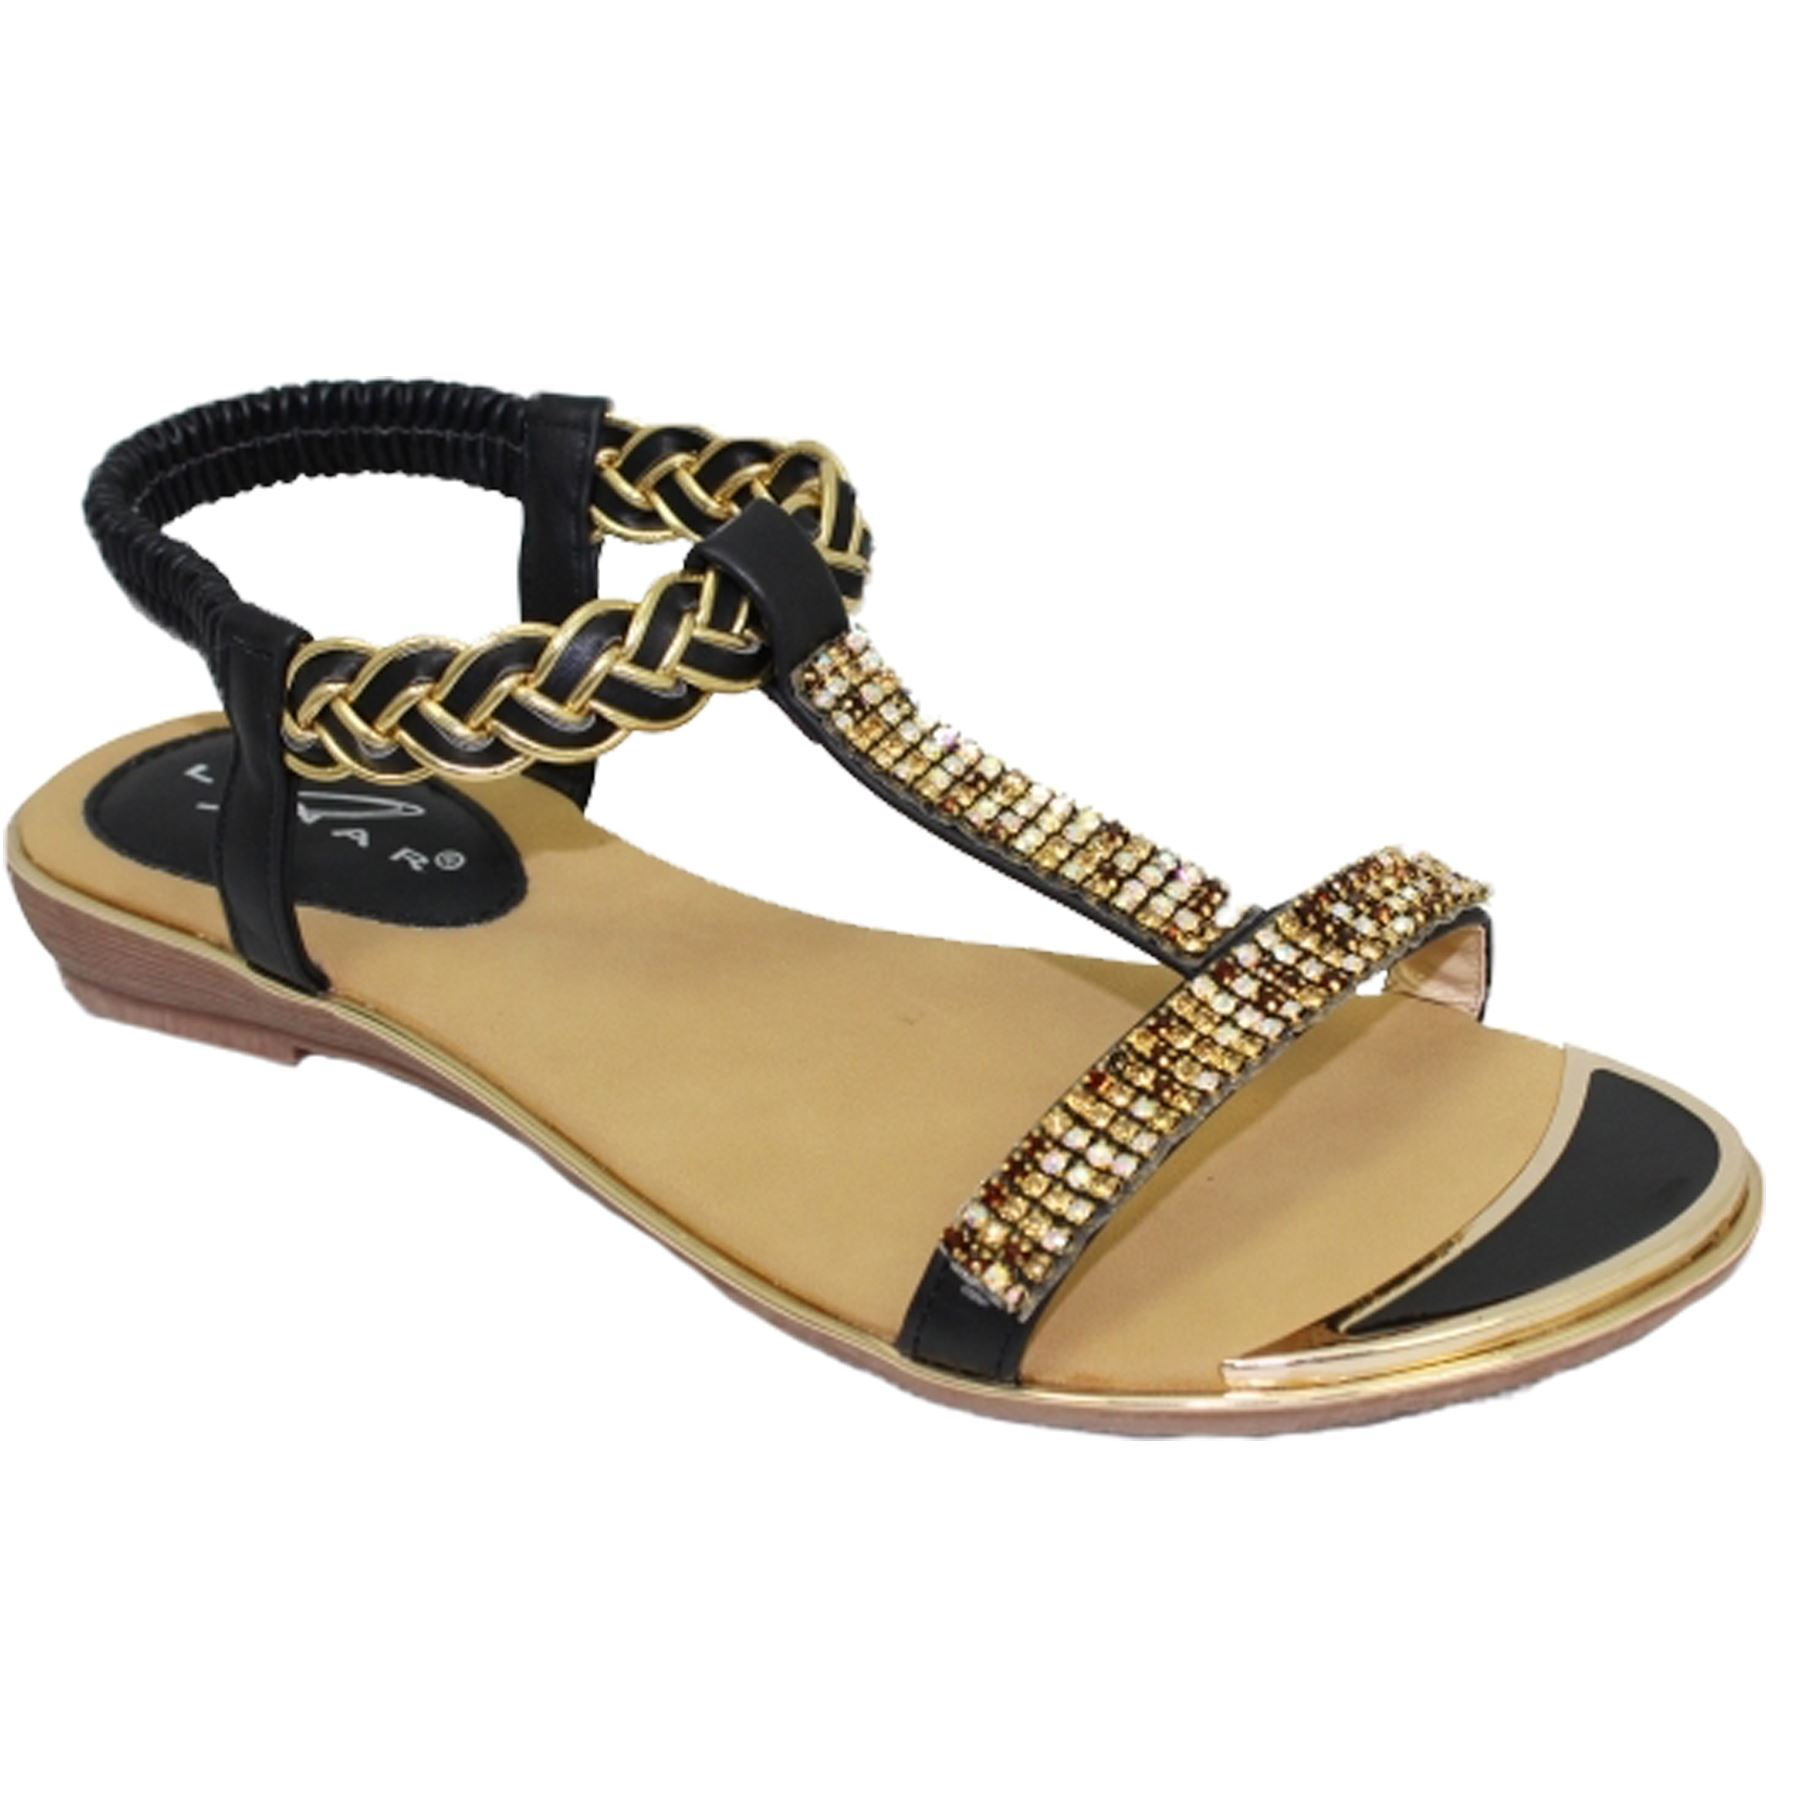 Jlh913 Comet Padded Insole Slip On Gold Plate T Bar Gemstone Sandals Tendencies Footbed 2 Strap Brown 41